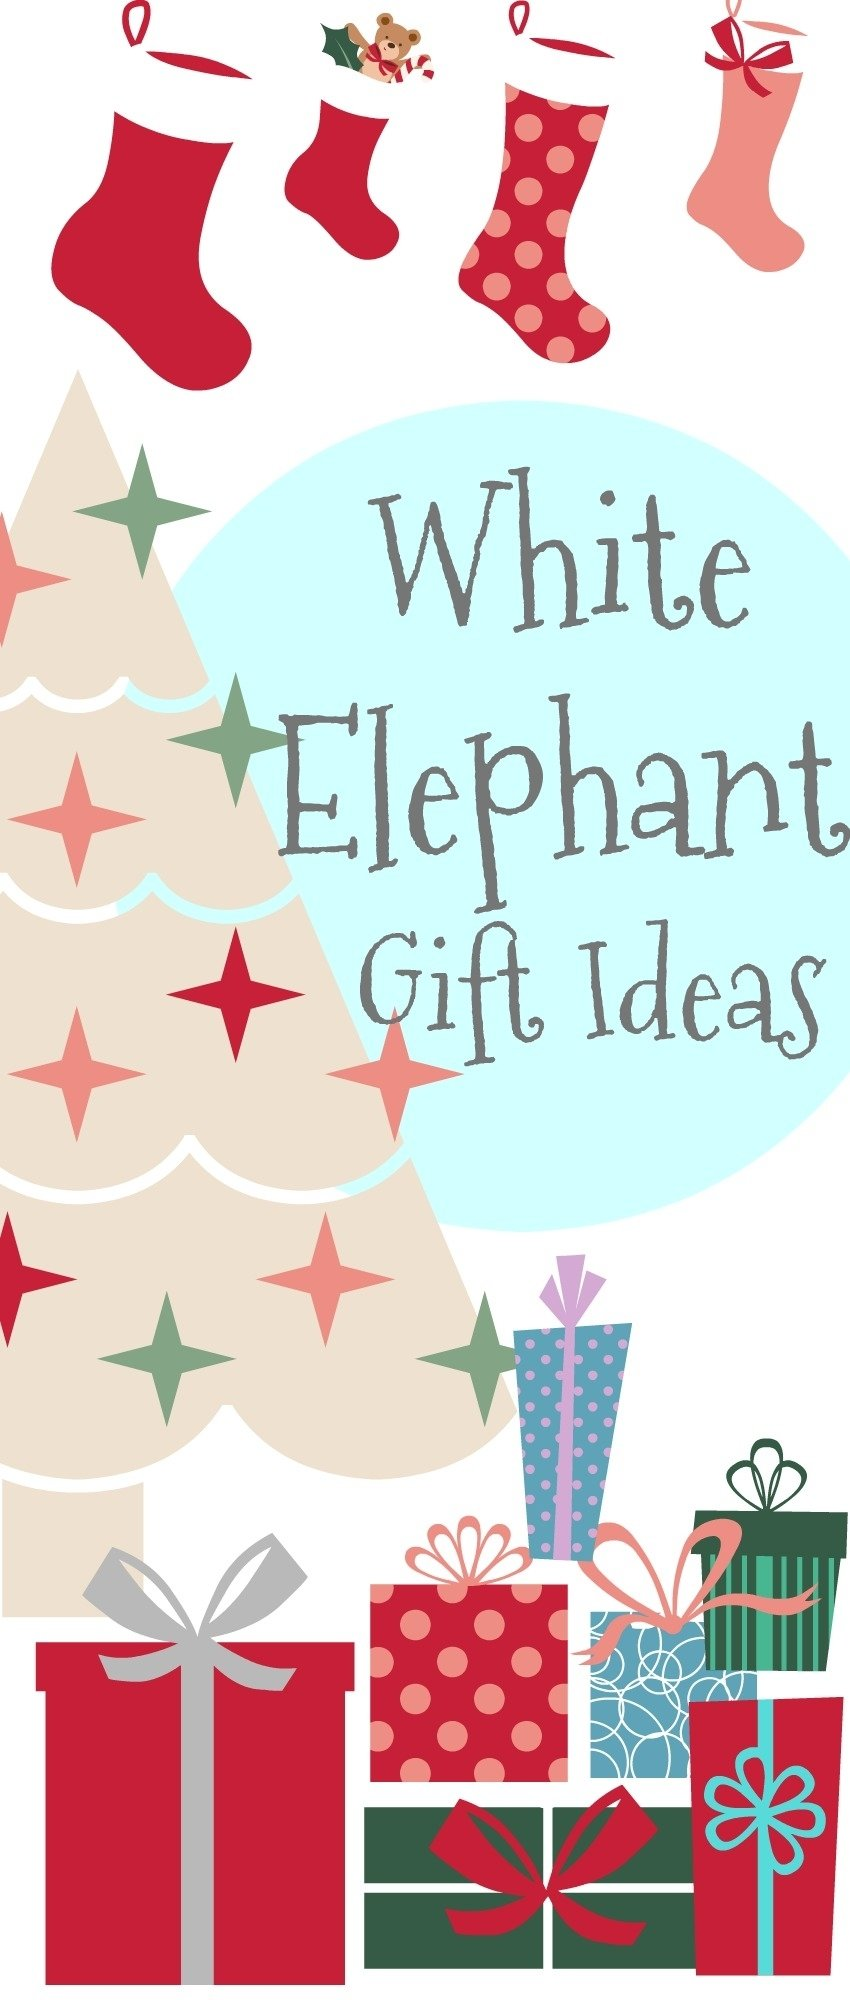 10 Perfect What Is A White Elephant Gift Ideas white elephant gift ideas the cards we drew 6 2020